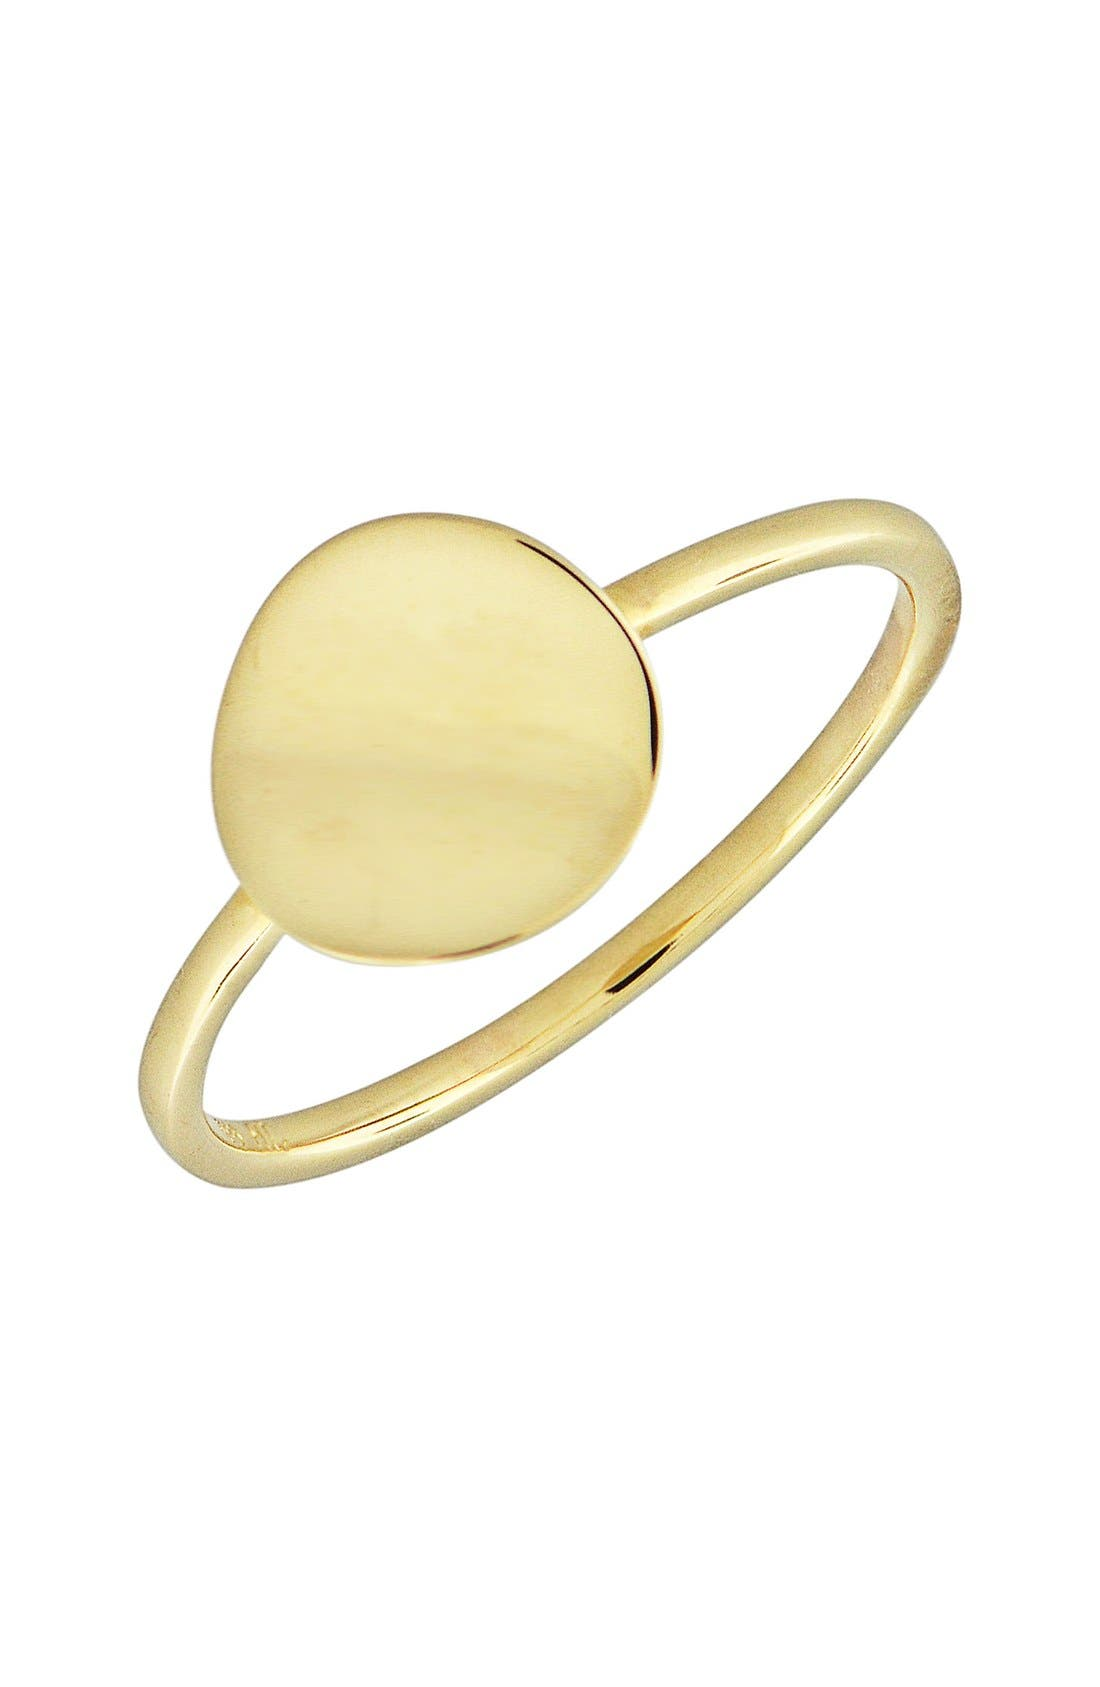 Alternate Image 1 Selected - Bony Levy 14k Gold Concave Disc Ring (Nordstrom Exclusive)